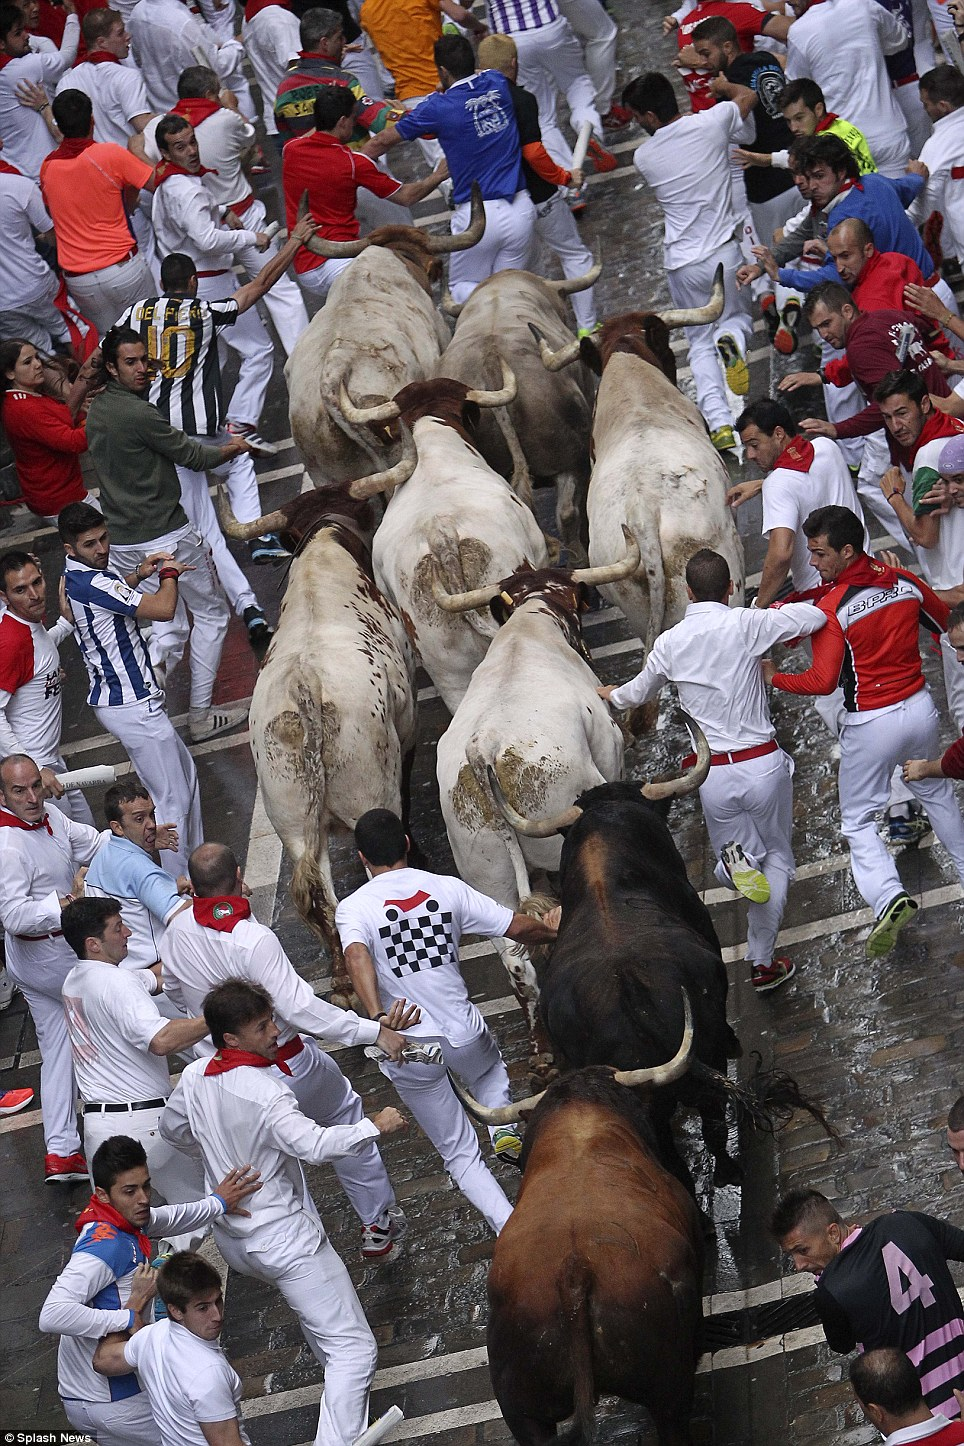 The annual Fiesta de San Fermin lasts for nine days and was made famous by the 1926 novel of writer Ernest Hemingway